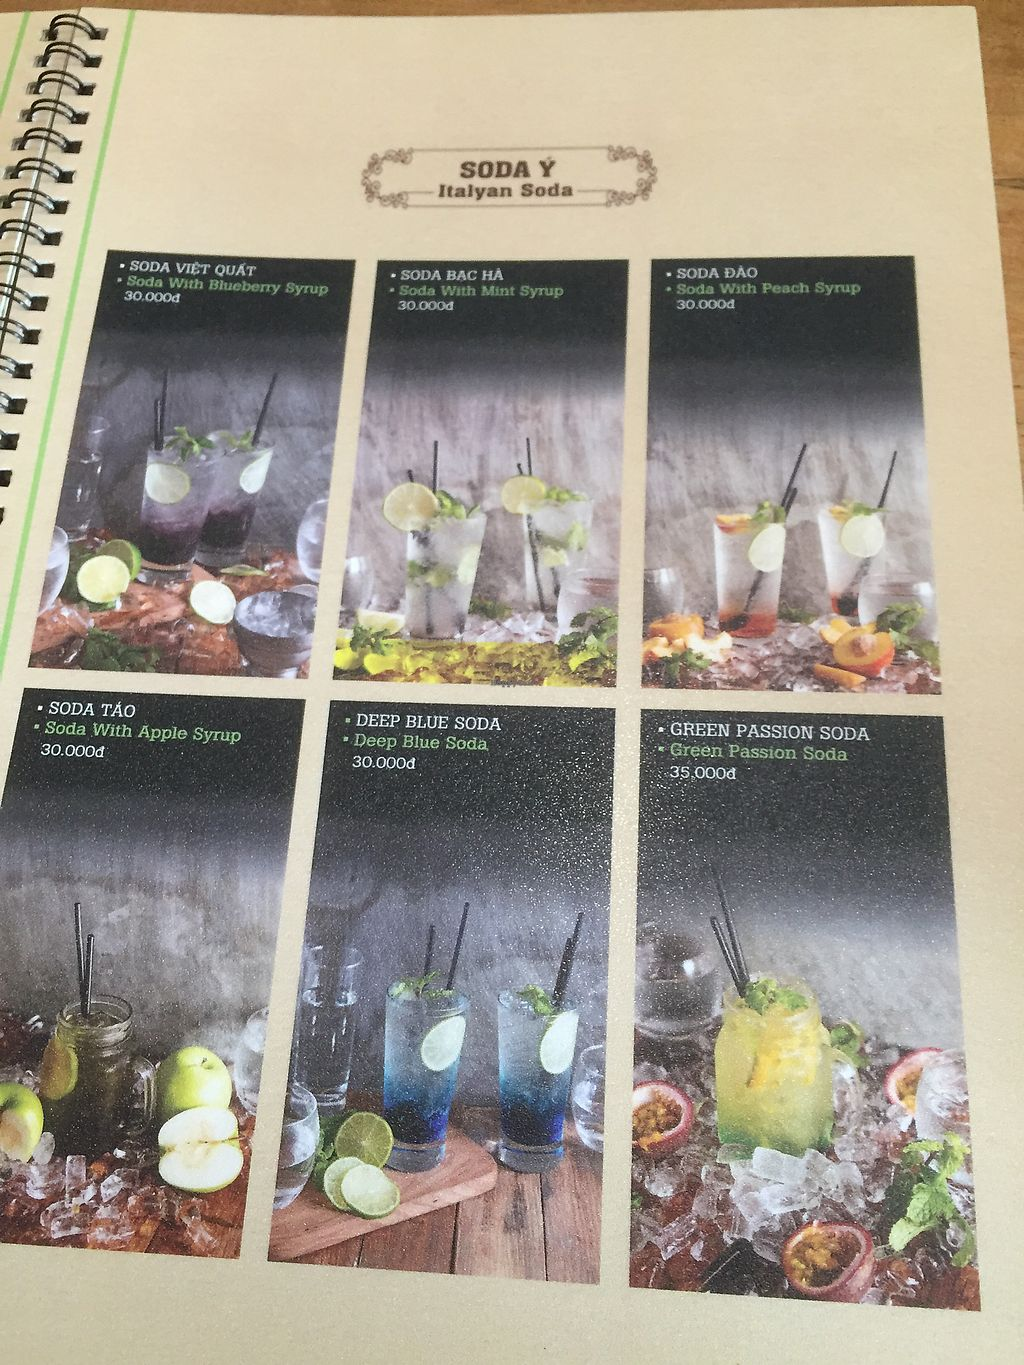 """Photo of Vegan Kitchen  by <a href=""""/members/profile/SusanRoberts"""">SusanRoberts</a> <br/>Menu <br/> December 31, 2017  - <a href='/contact/abuse/image/91953/341231'>Report</a>"""